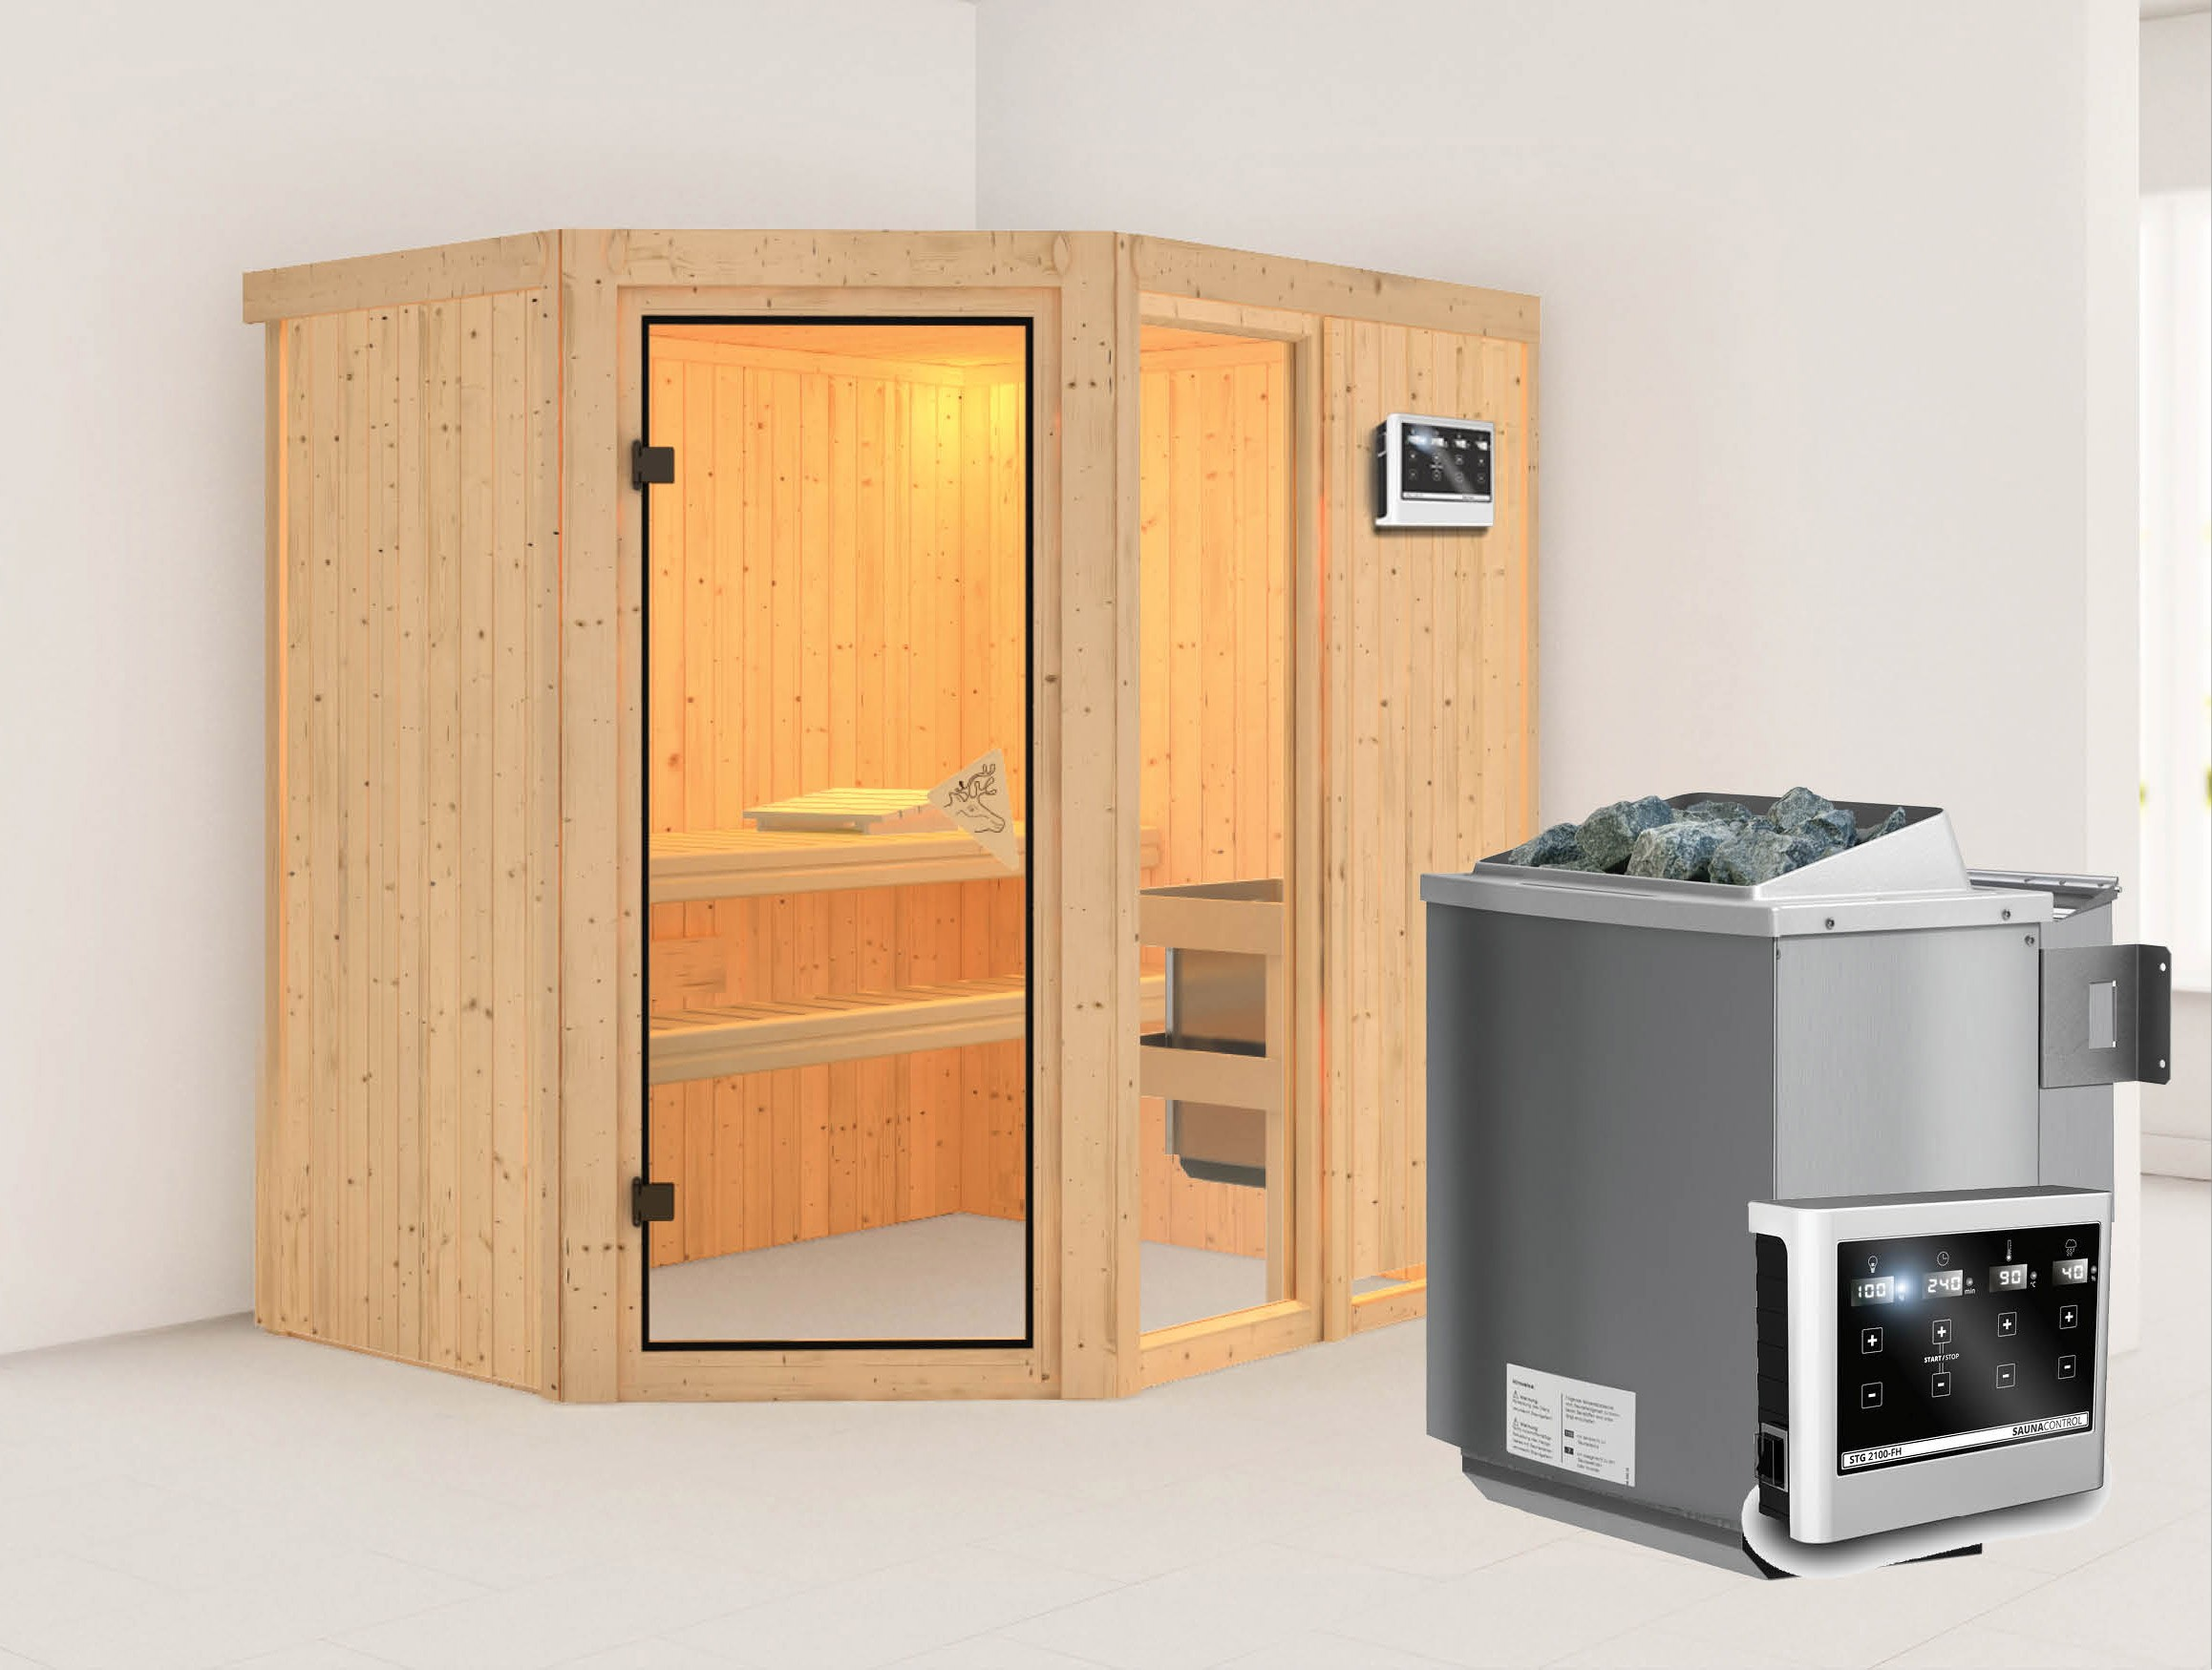 karibu sauna fiona1 68mm mit bio ofen 9kw extern classic. Black Bedroom Furniture Sets. Home Design Ideas